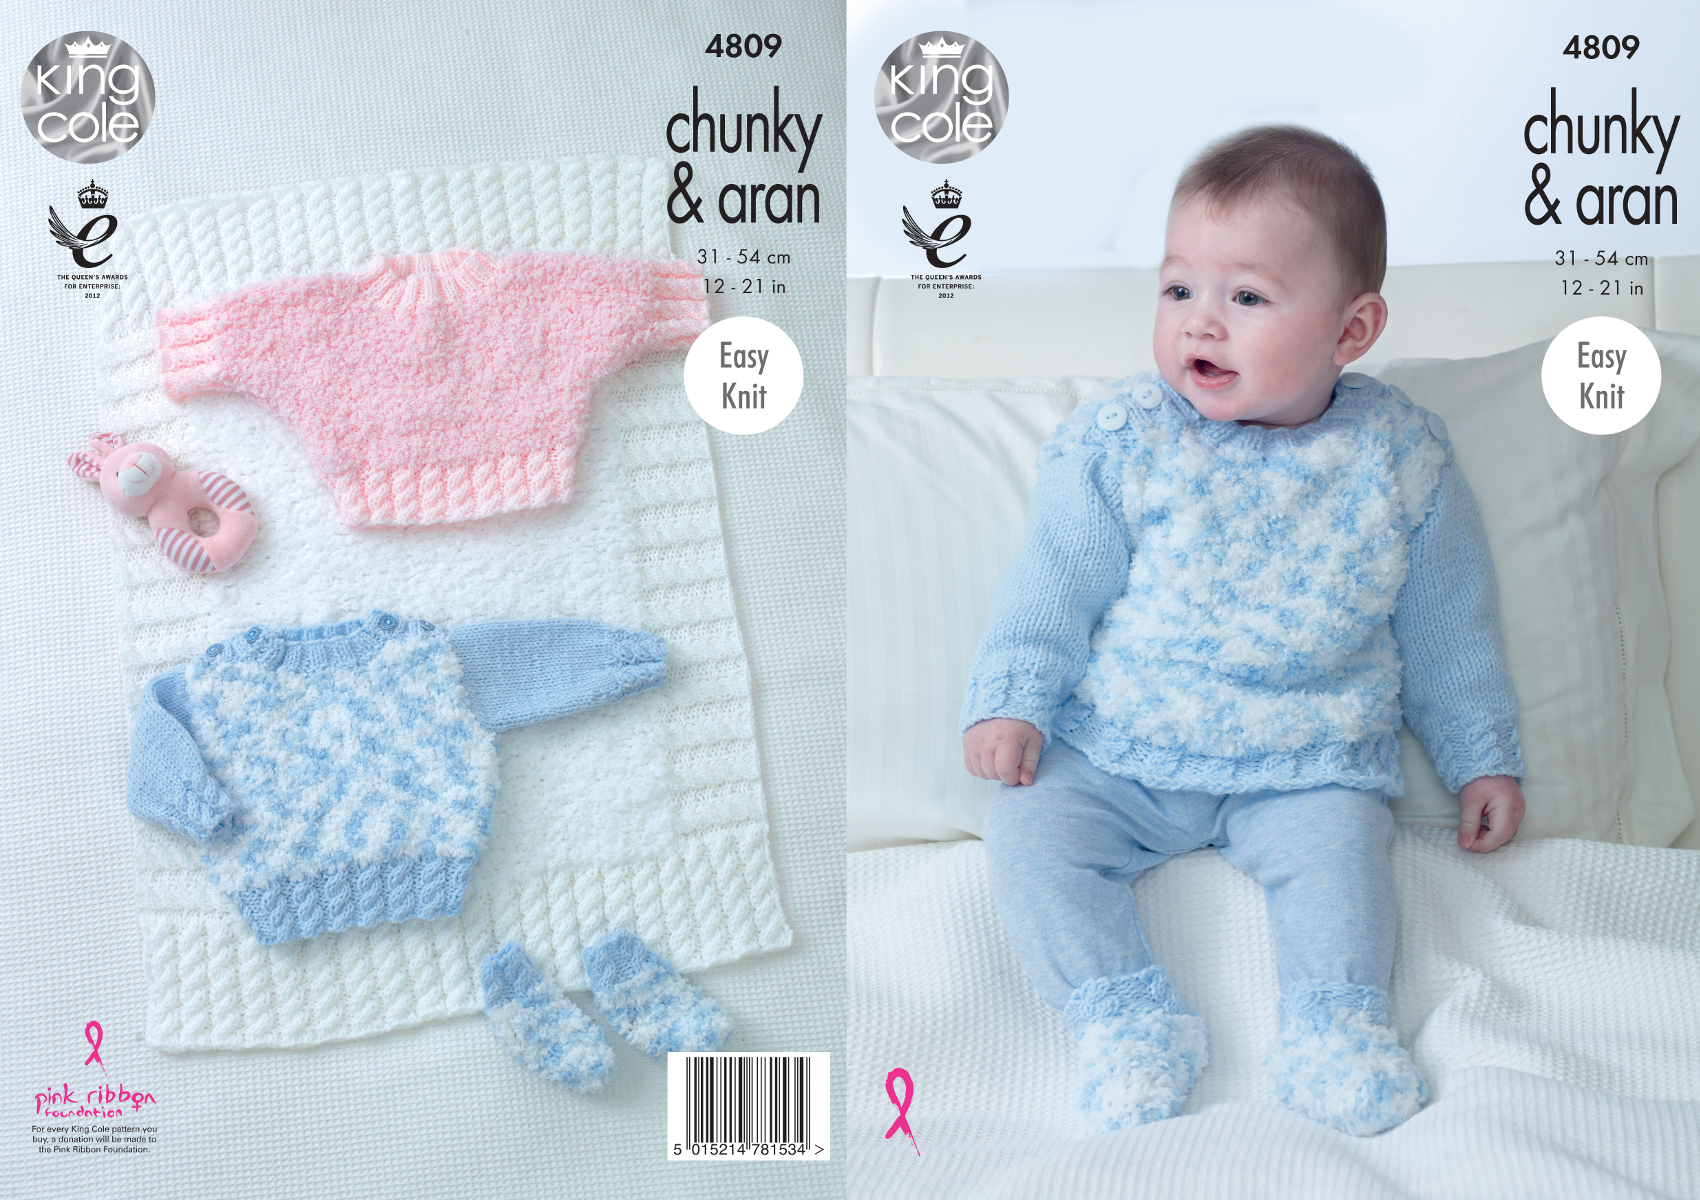 Baby knitting pattern jumper top blanket socks king cole chunky baby knitting pattern jumper top blanket socks king cole chunky with aran 4809 bankloansurffo Image collections